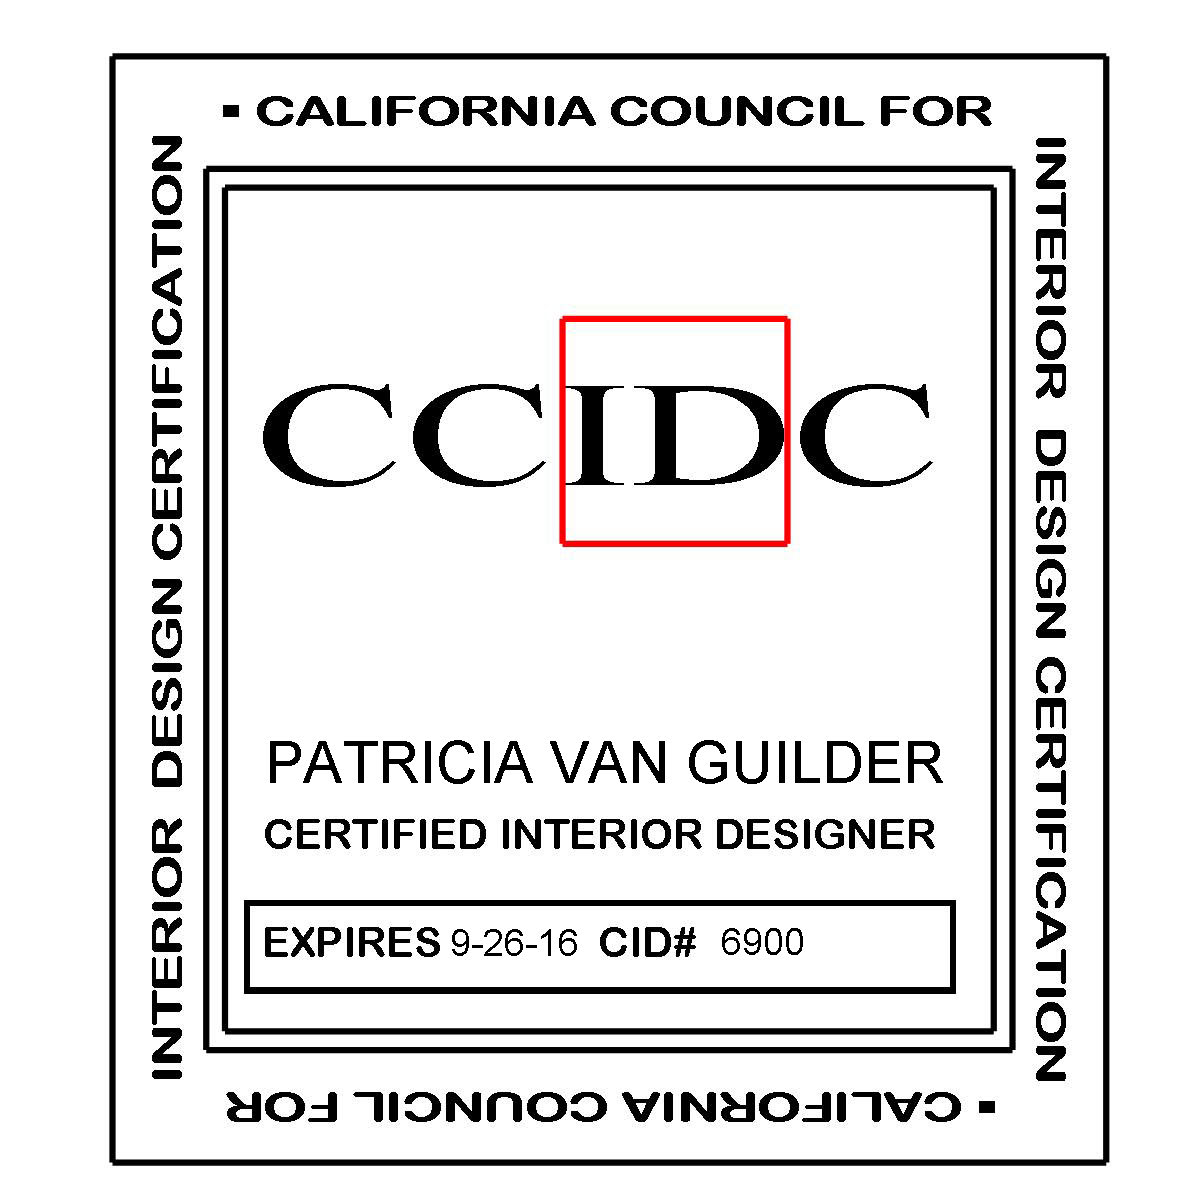 California Council For Interior Design Certification